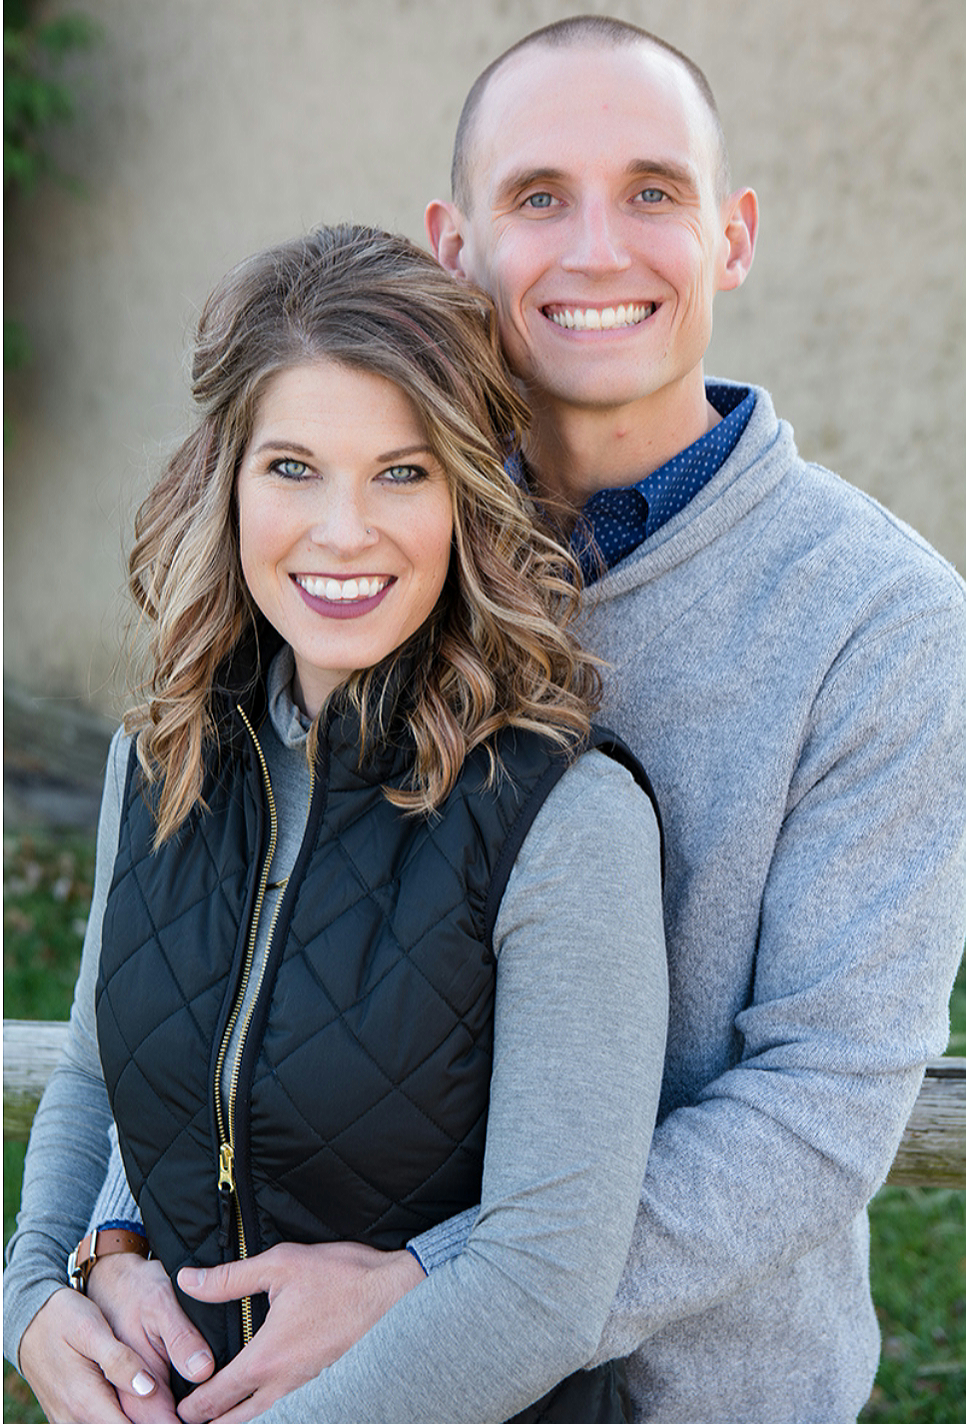 Katie grew up in the Heartland area. After dancing and studying Elementary Education in college, she now serves as a Women's Ministry leader in Lawrence, KS along side her husband, Willie. She is the mother of two beautiful daughters, Kaylie Jean and Kylie Jo.